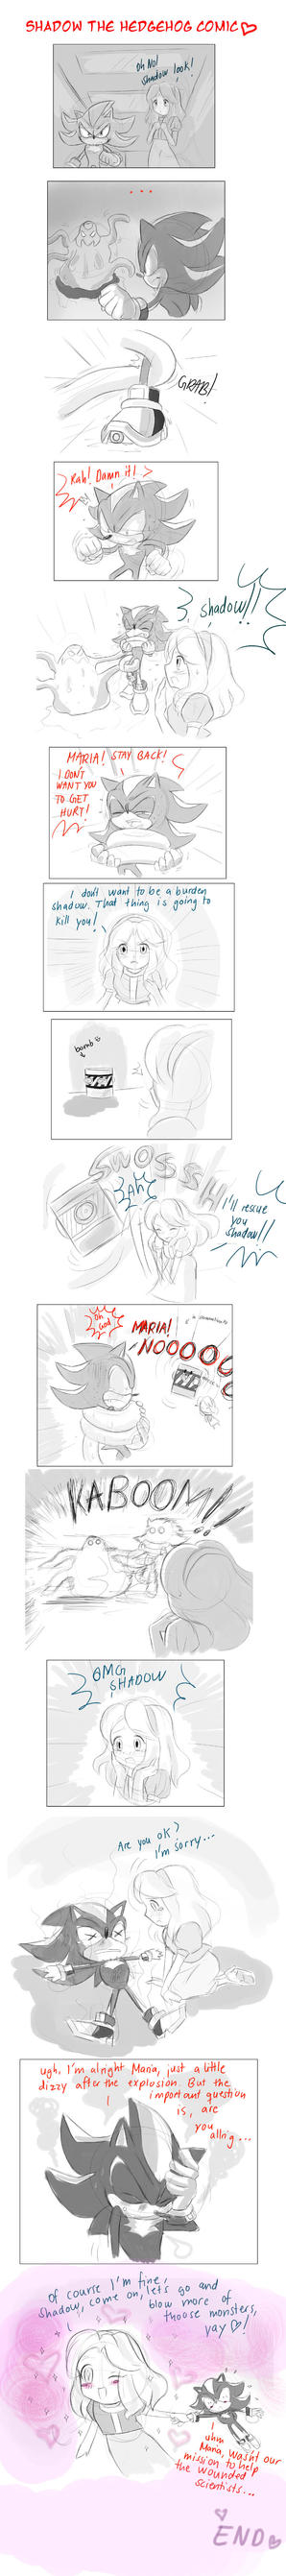 Shadow the hedgehog comic by missyuna